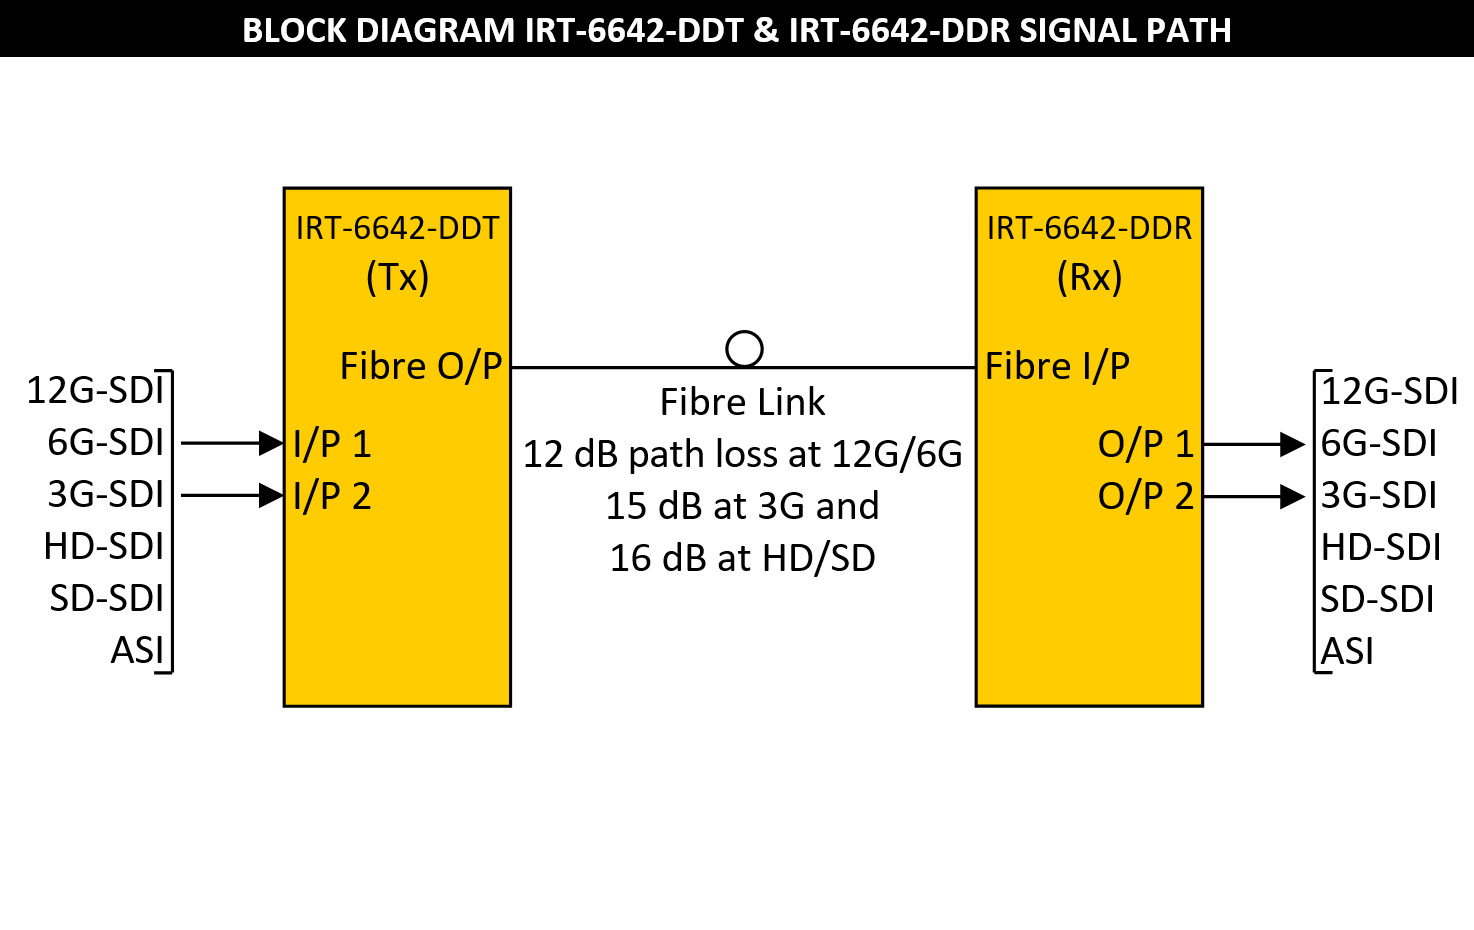 IRT-6642-DDT & IRT-6642-DDR Block Diagram